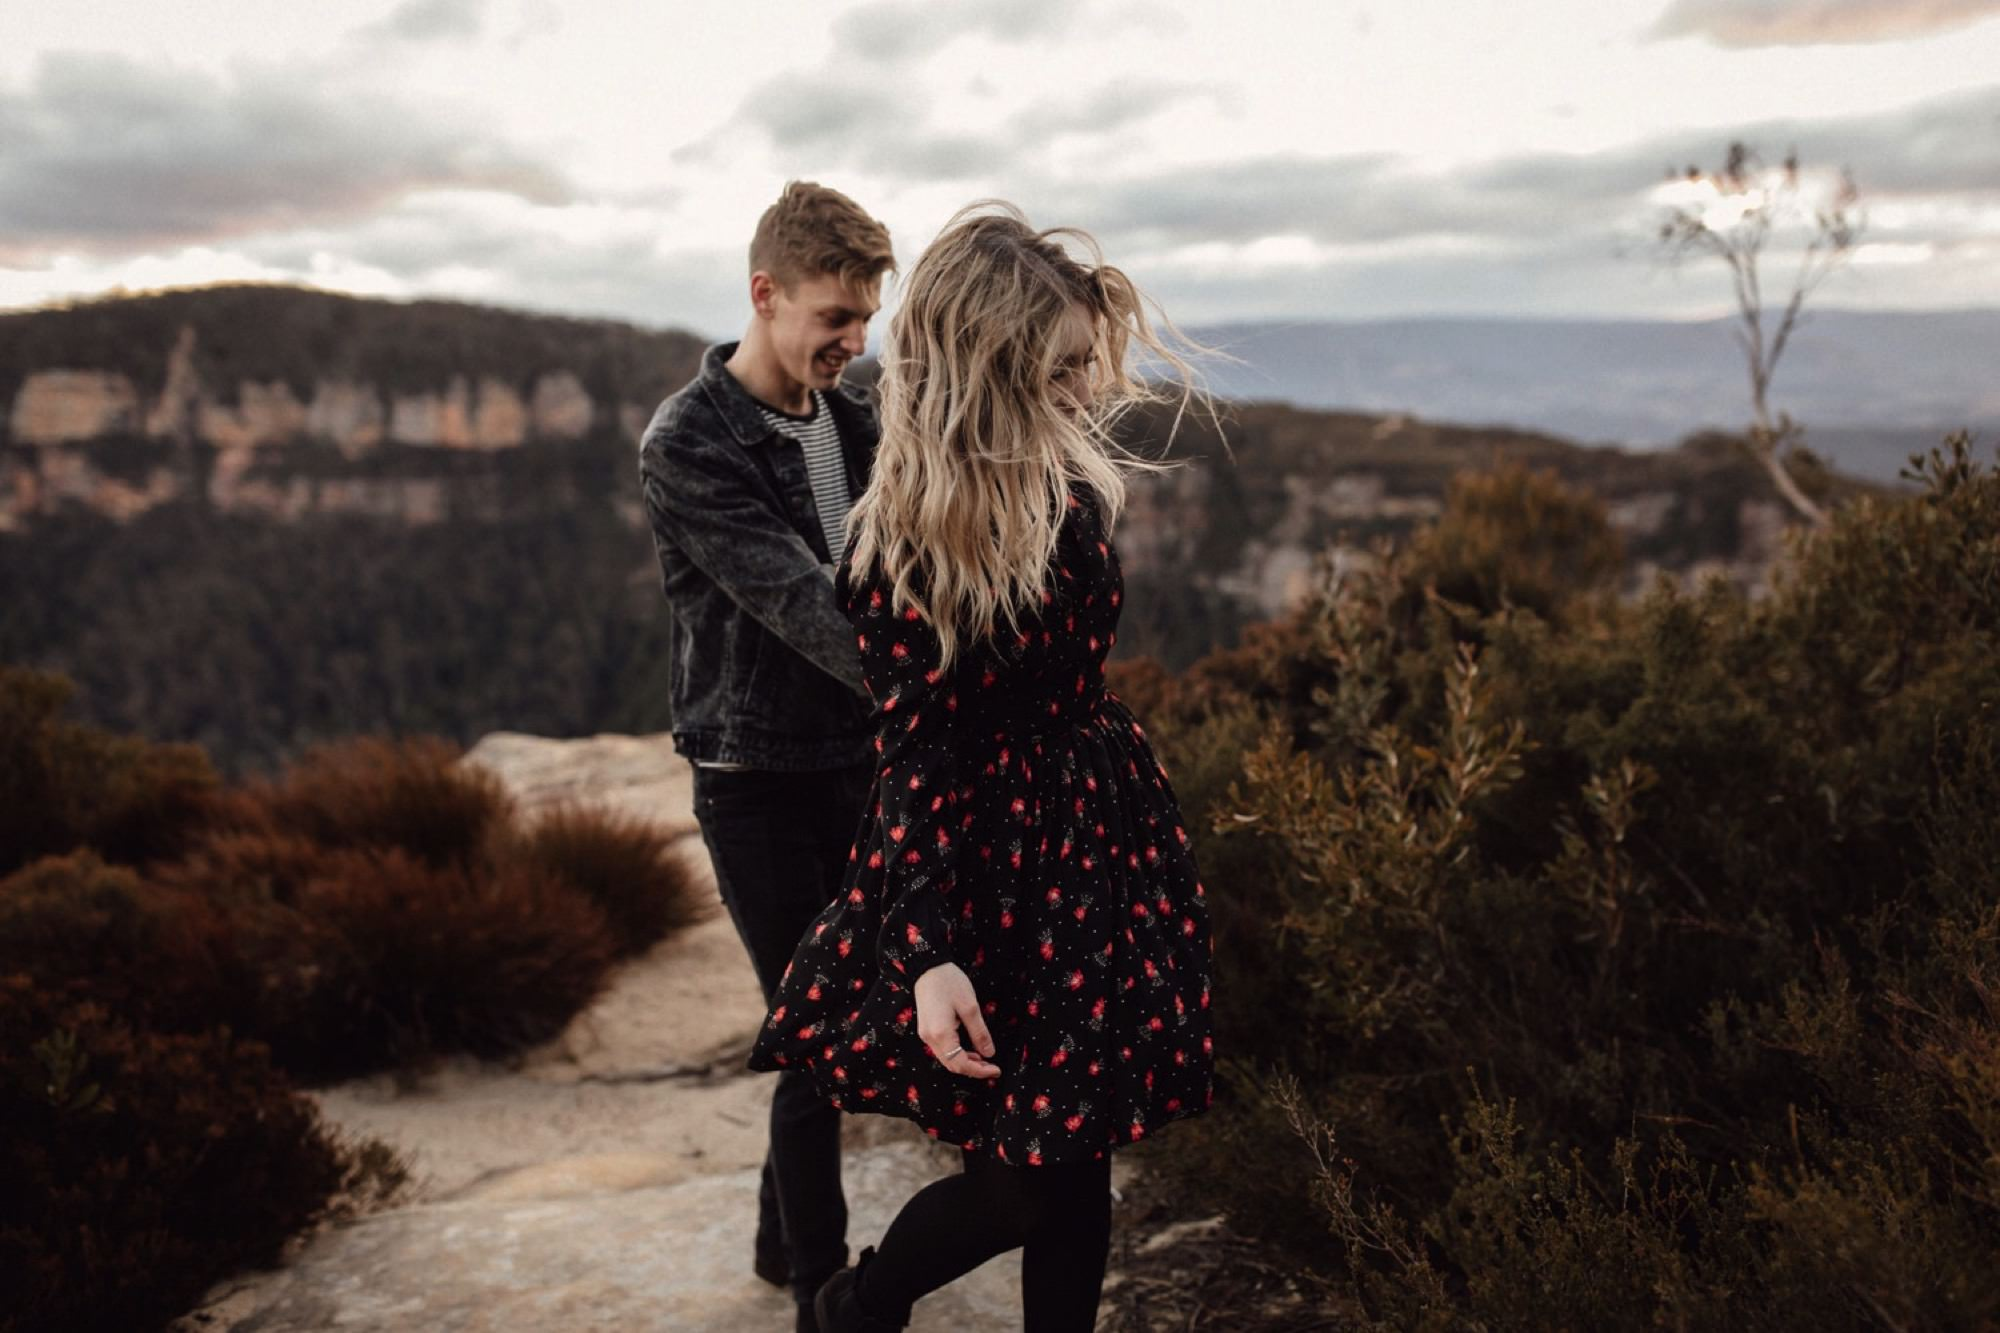 Blue Mountains, Katoomba, Wedding Photographer, Wedding Photography, sunshine coast, brisbane, gold coast, moody, couples, family portrait, winter